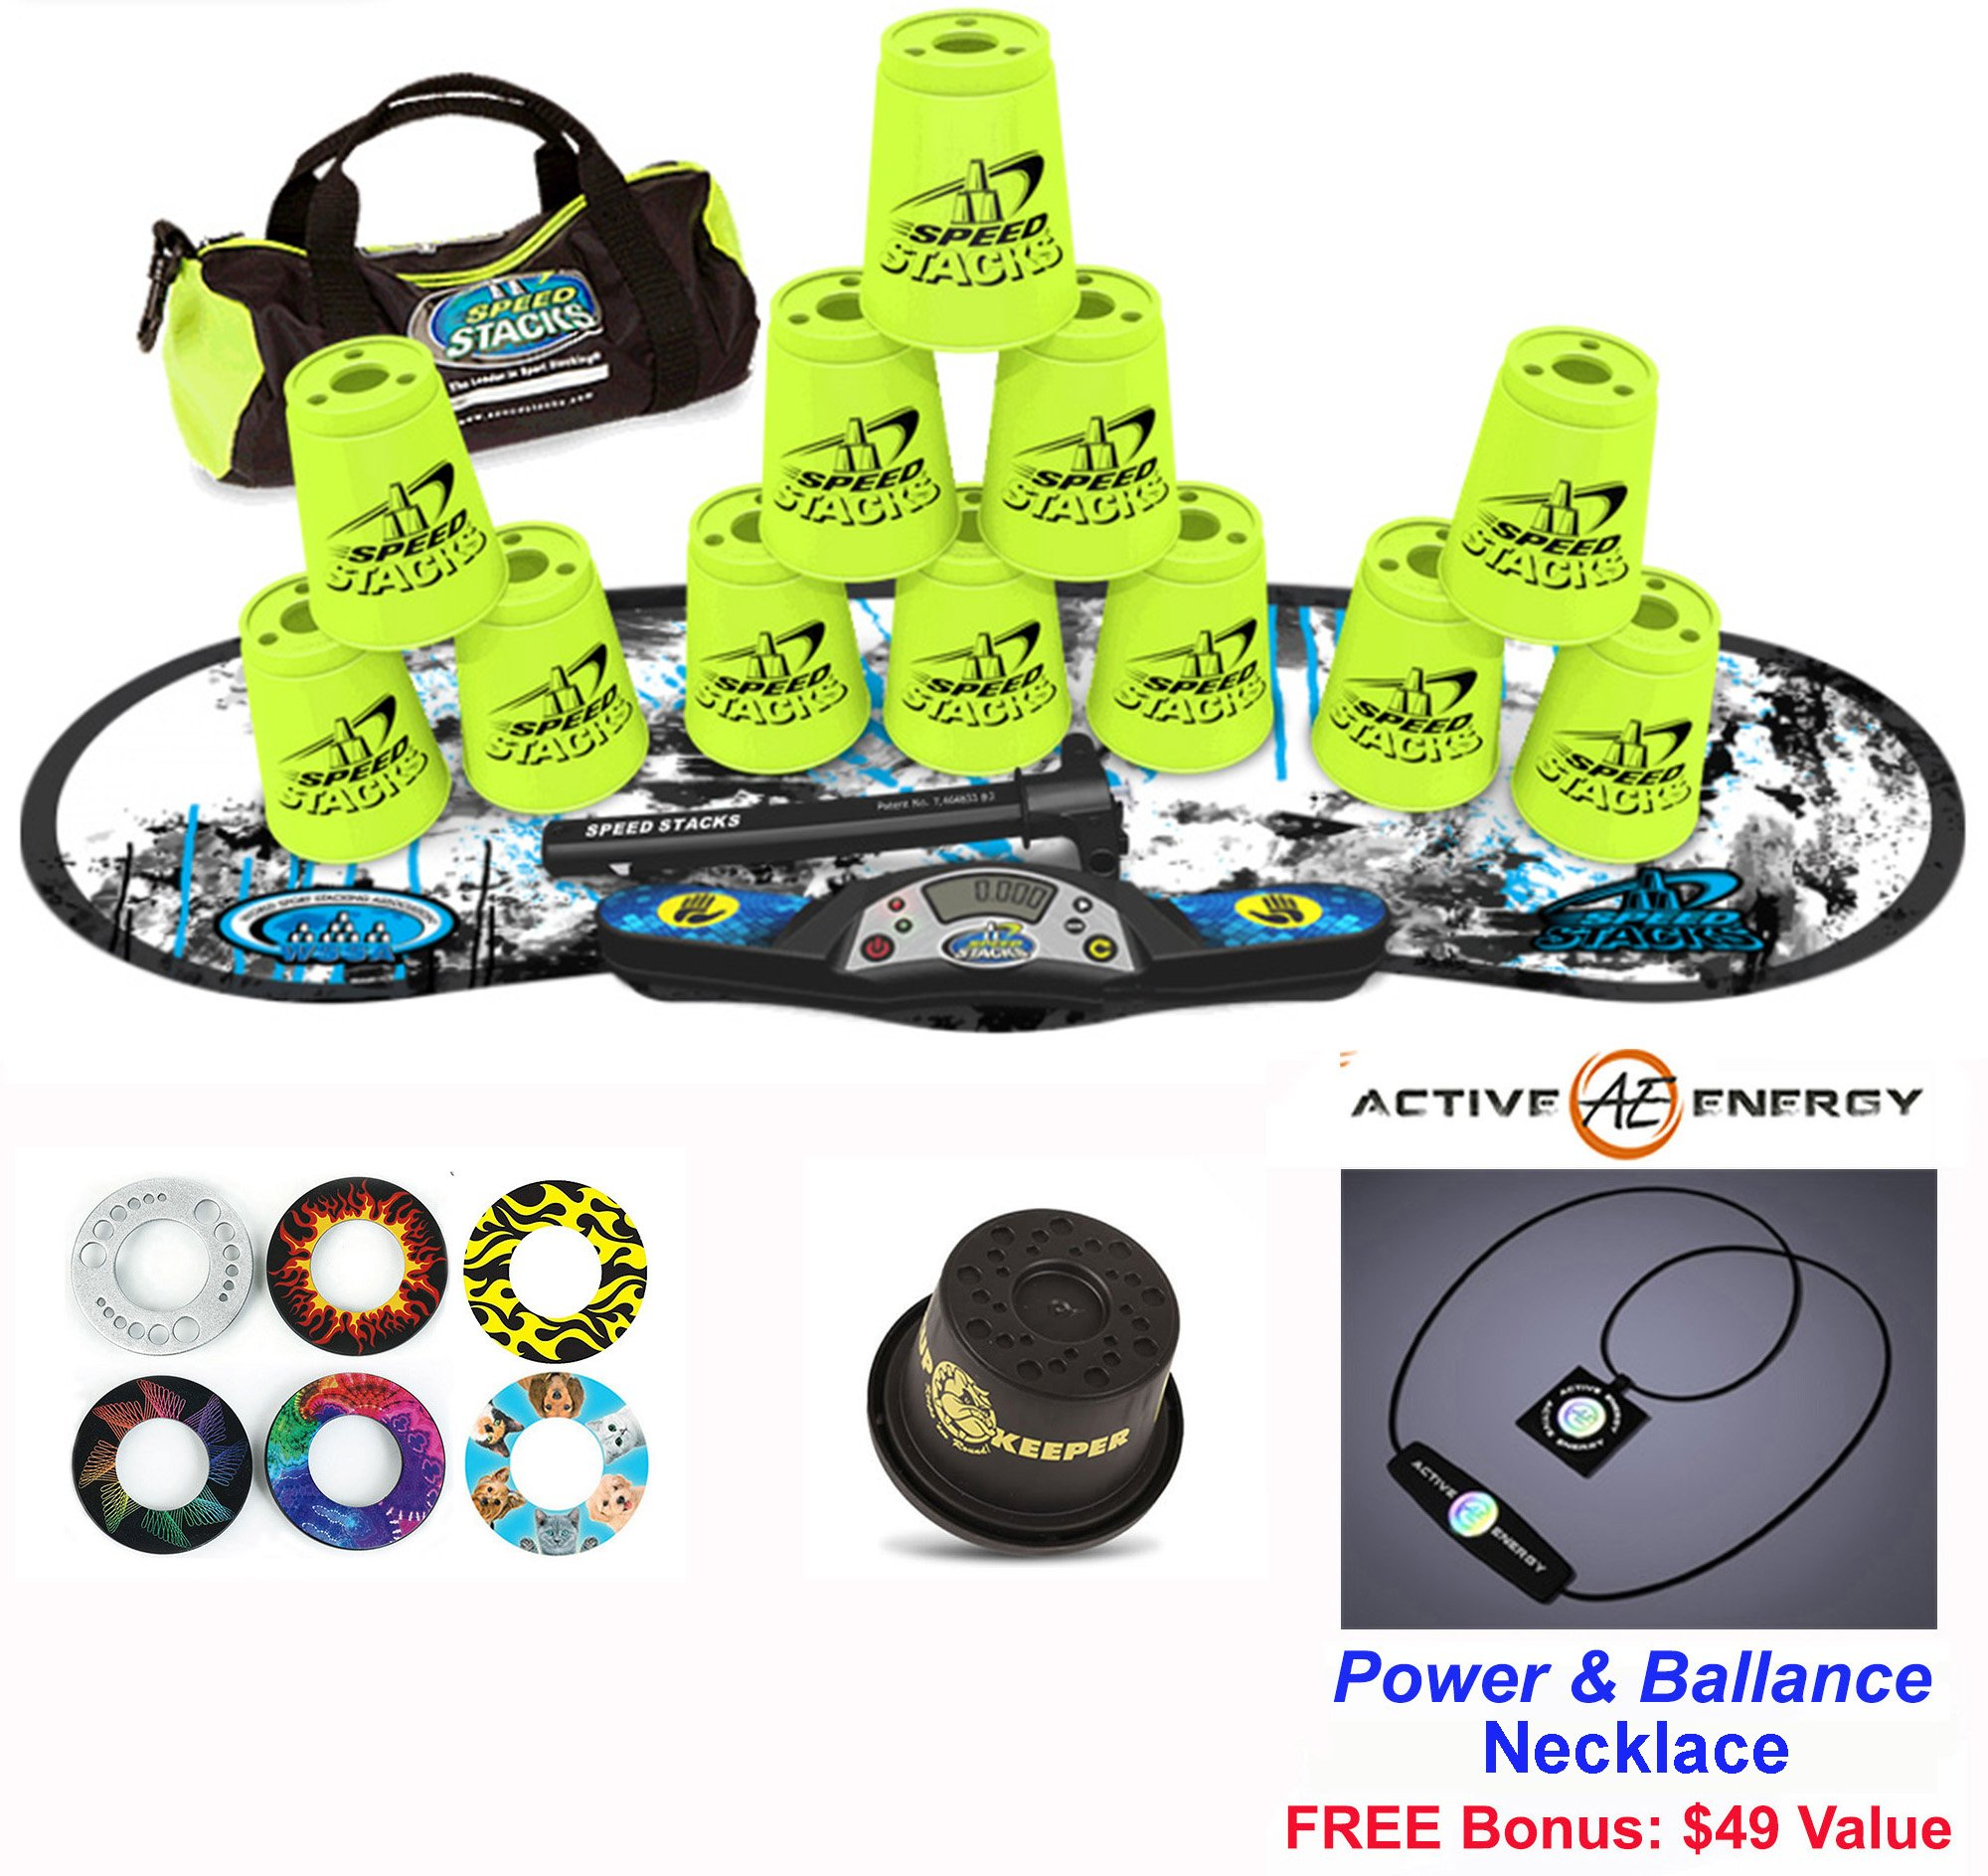 Speed Stacks Combo Set ''The Works'': 12 NEON YELLOW 4'' Cups, REBEL MUDD Gen 3 Mat, G4 Pro Timer, Cup Keeper, Stem, Gear Bag, 6 Snap Tops + Active Energy Necklace by Speed Stacks